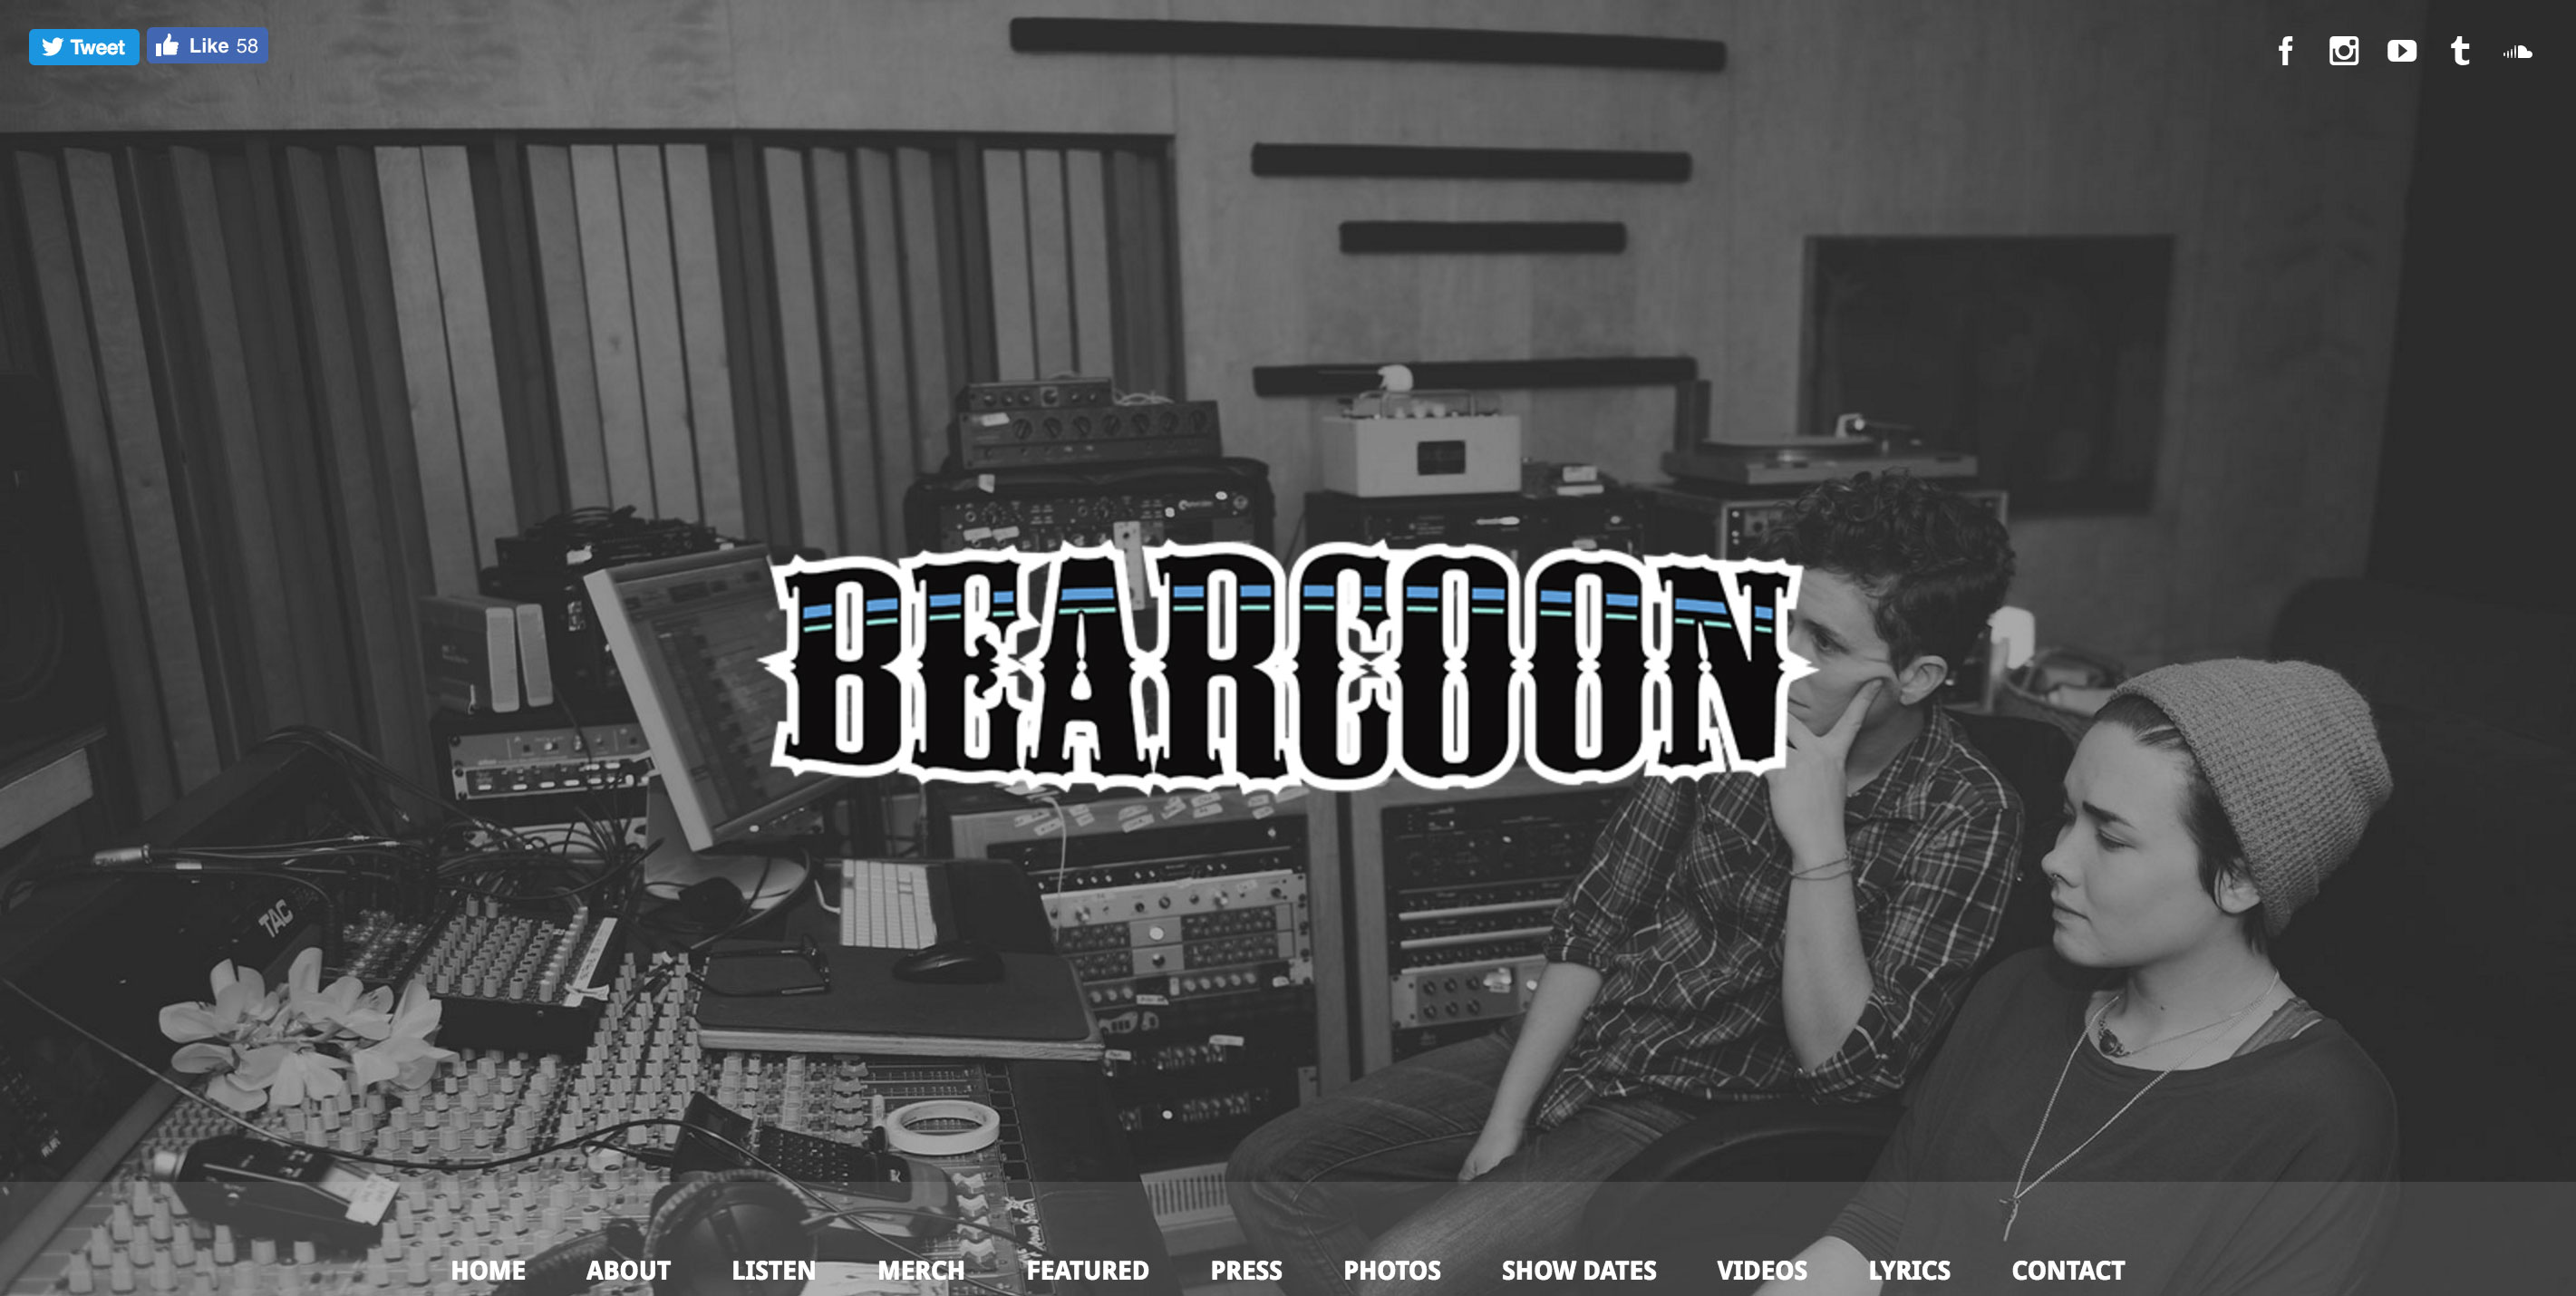 BEARCOON website